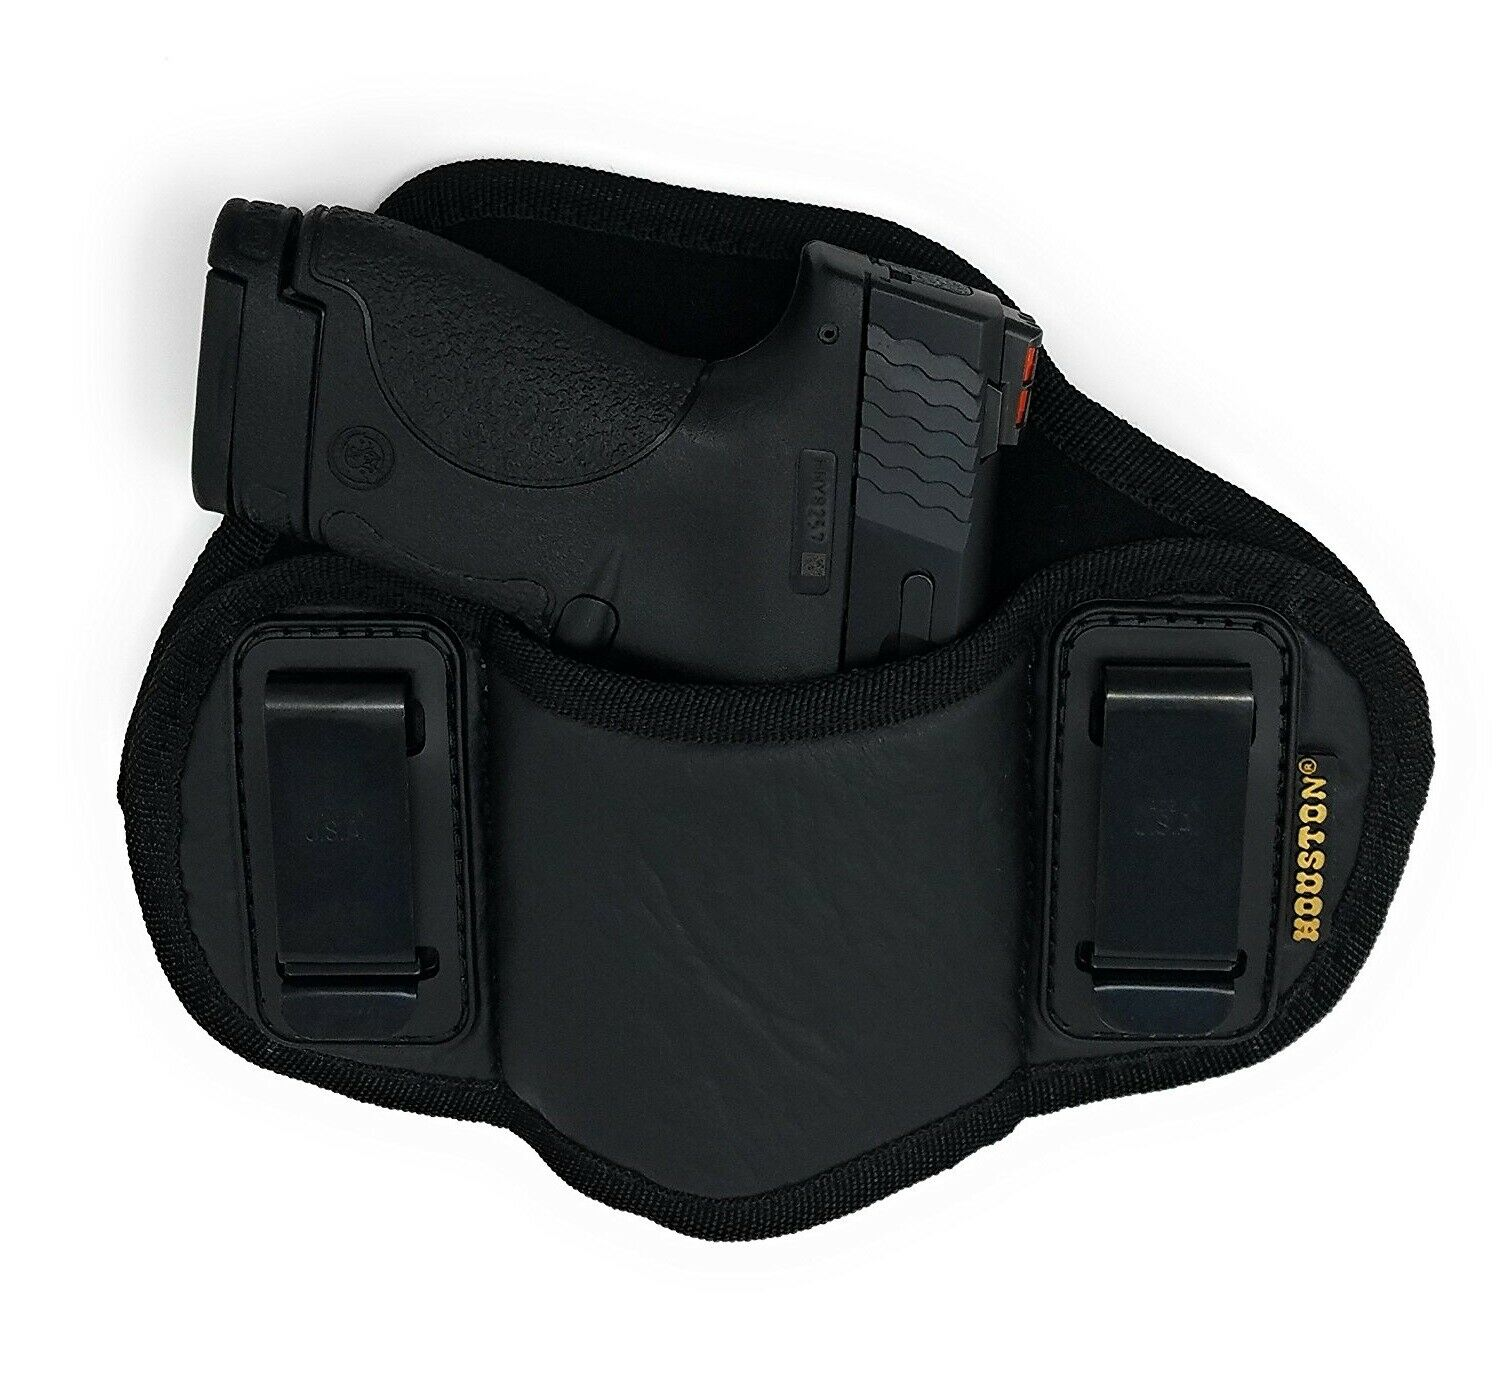 Tactical Pancake Concealed Carry IWB Gun Holster Houston Leather - Choose Model